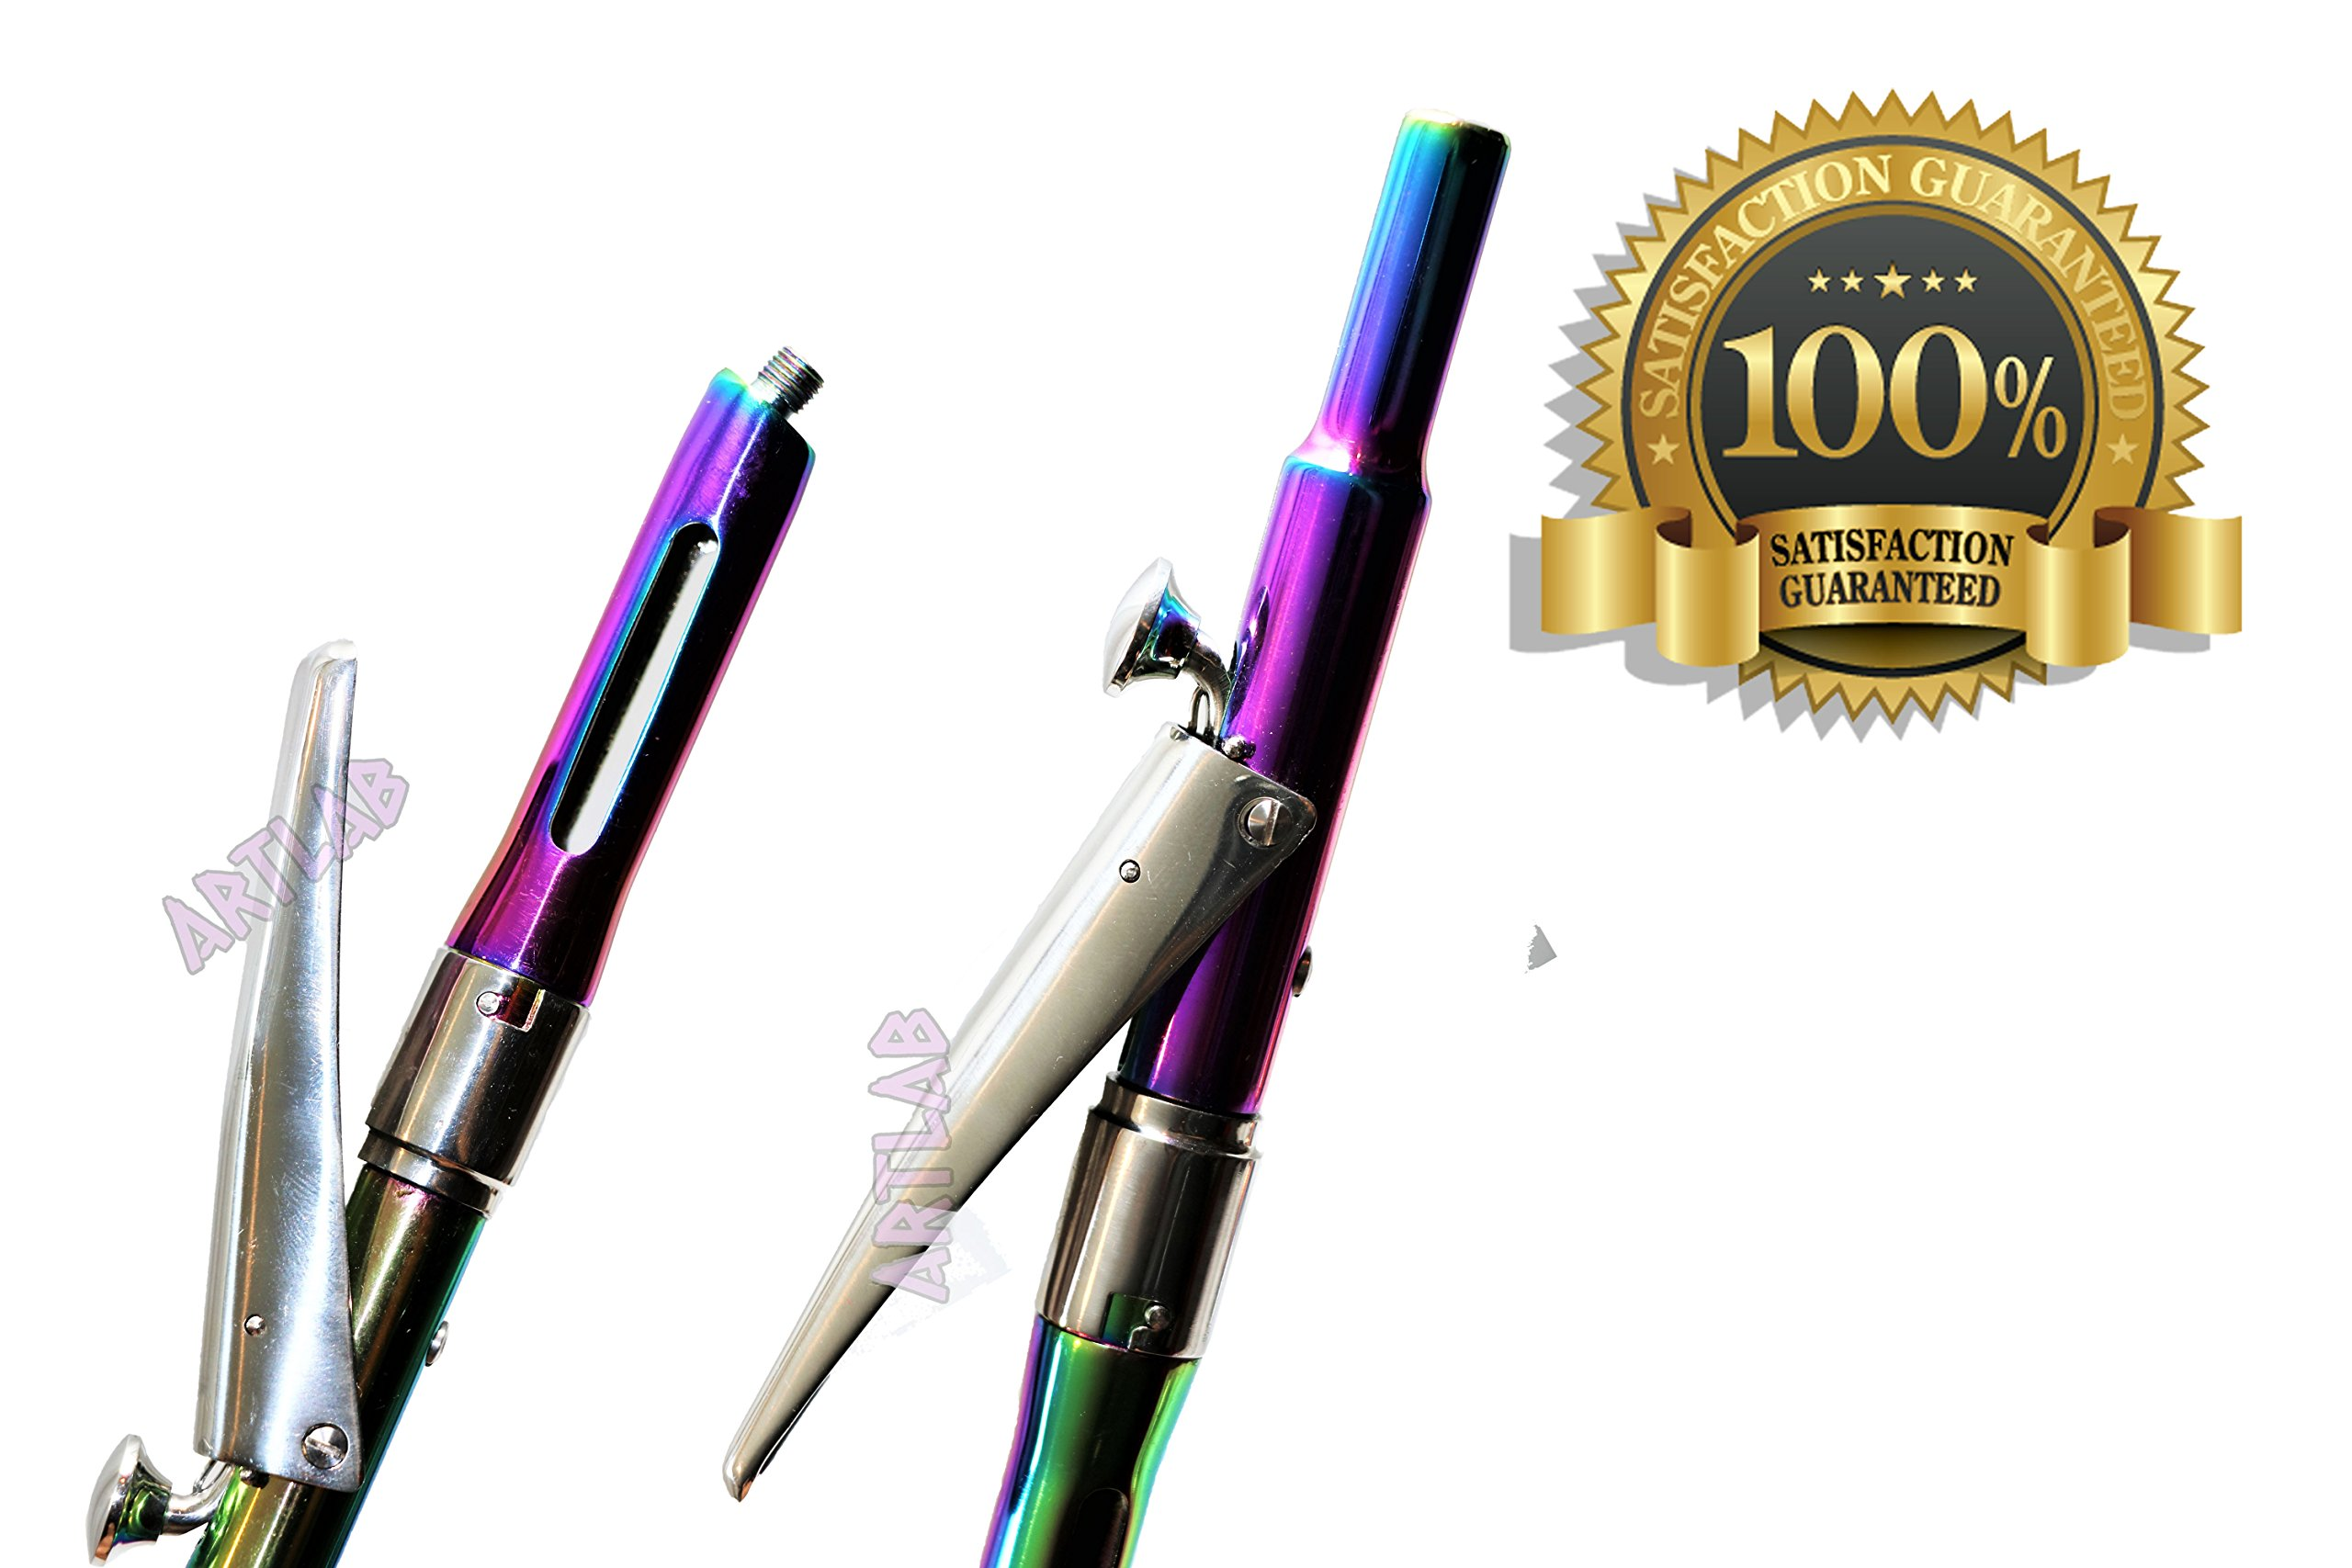 INTRALIGAMENTAL SYRINGE PEN GERMAN PREMIUM CITOJECT DENTAL ANESTHETICS MUTICOLOR (CYNAMED)